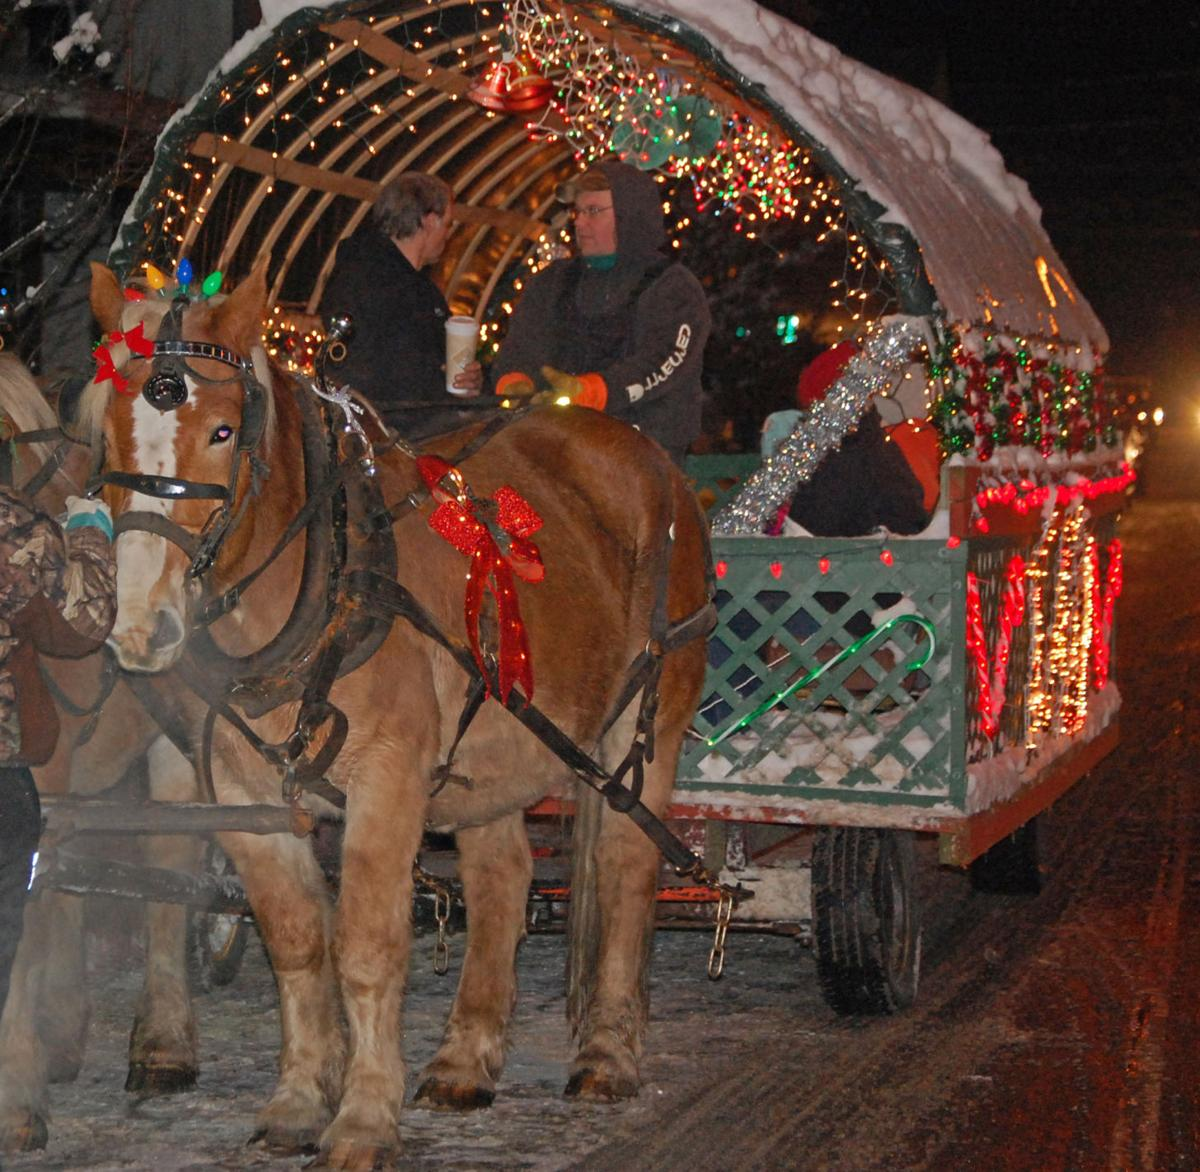 Christmas Parade 2020 Croghan Ny New community tree marks Christmas magic in Croghan | Top Stories